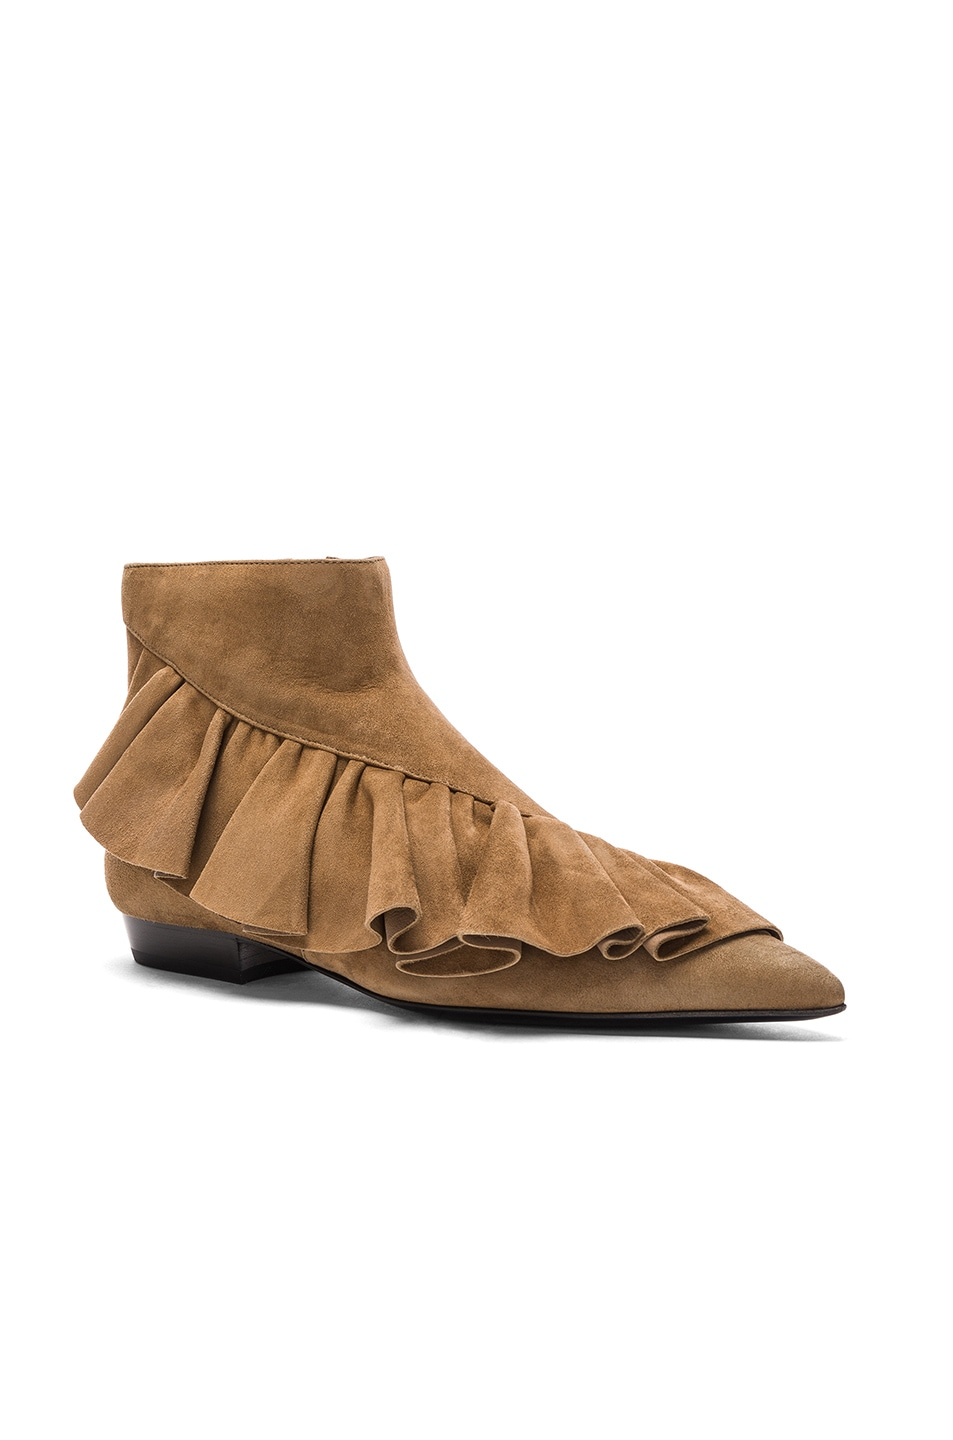 J.W.ANDERSON Suede Ruffle Booties